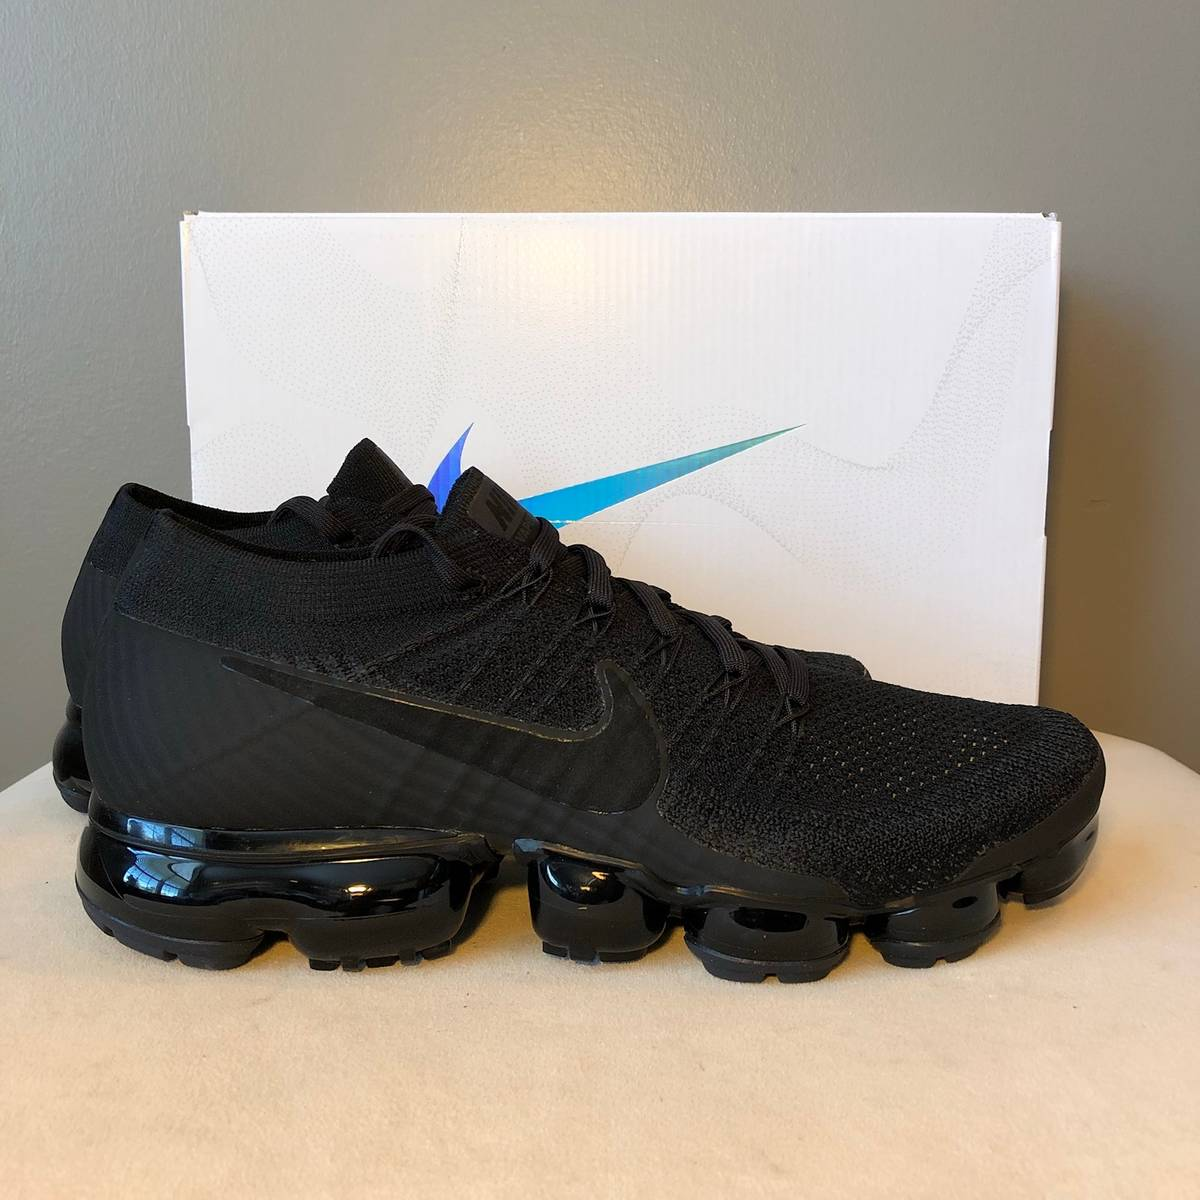 d53e24f831be Nike Nike Air Vapormax Flyknit Triple Black 3.0 Size 9 - Low-Top Sneakers  for Sale - Grailed